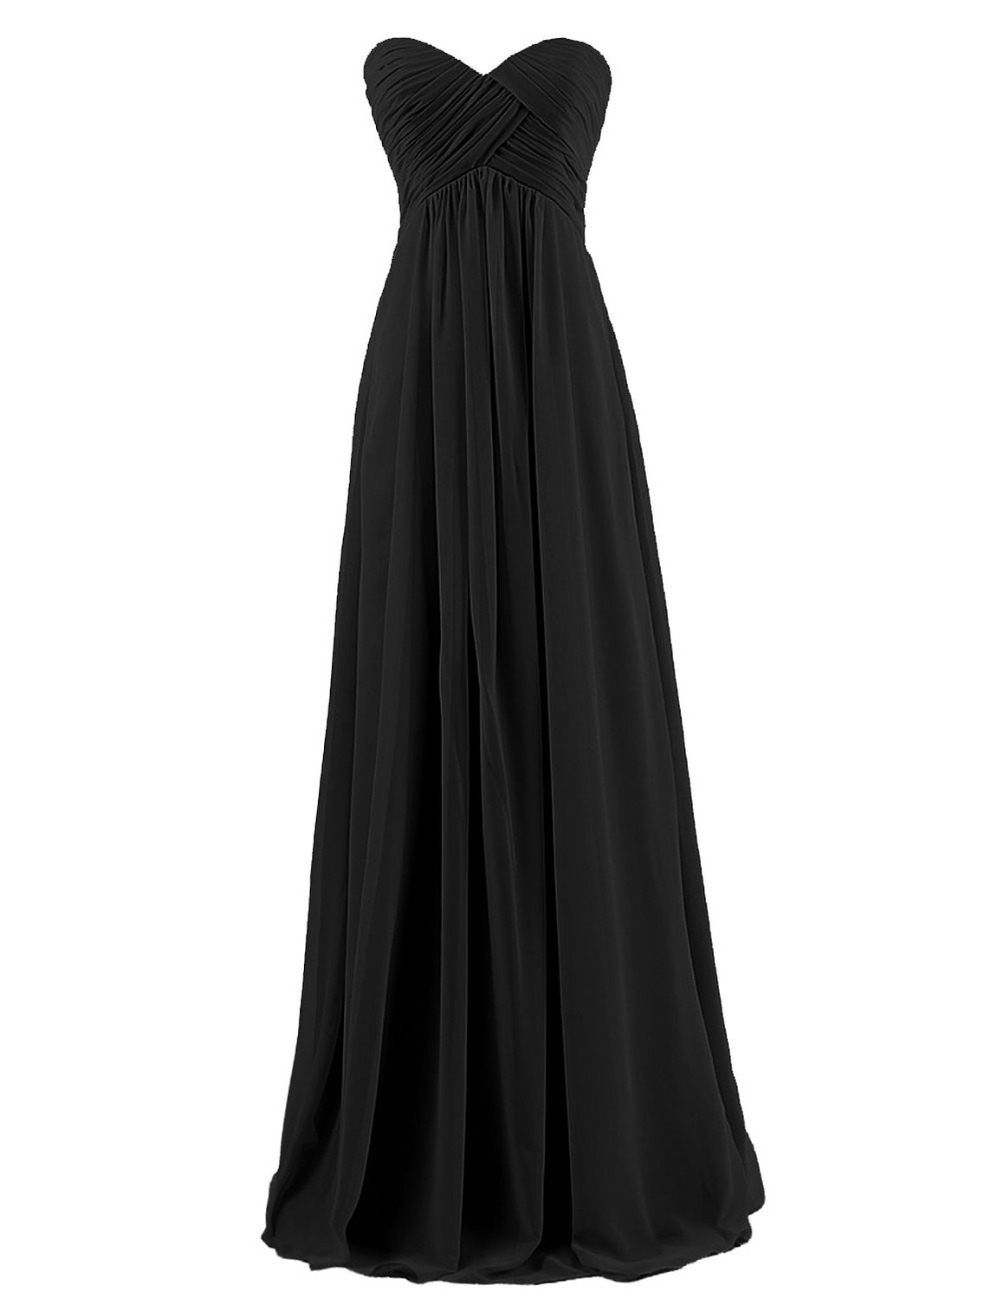 2015 Cheap Chiffon Long Black Dress Elegant Prom Dresses Sweetheart Women Fashion Party Gown